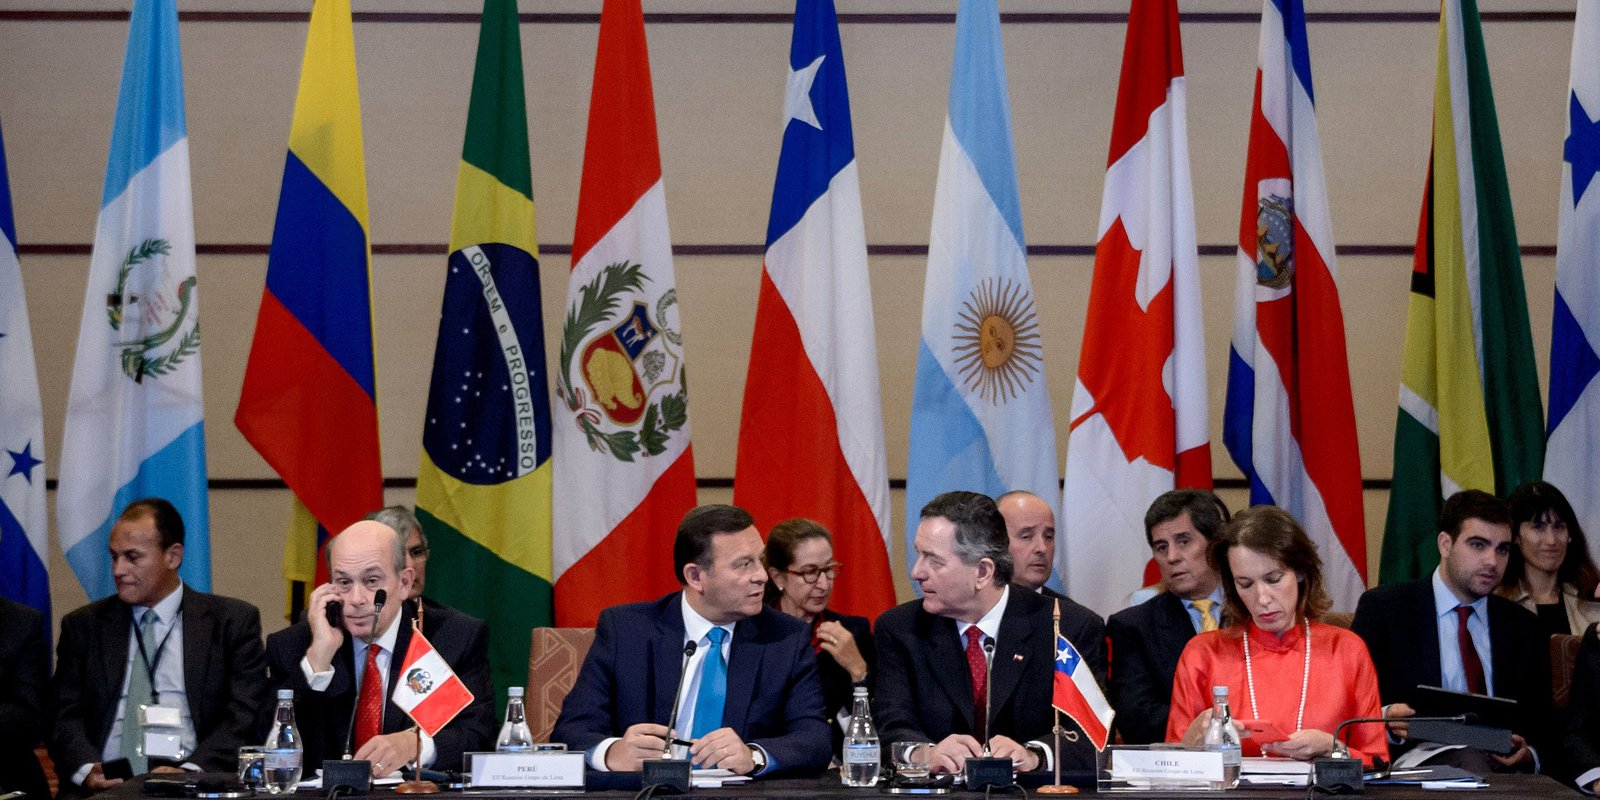 Foreign Ministers of nations of the Lima Group hold a meeting over the Venezuelan crisis, in Santiago, on April 15, 2019. Photo: MARTIN BERNETTI/AFP via Getty Images.